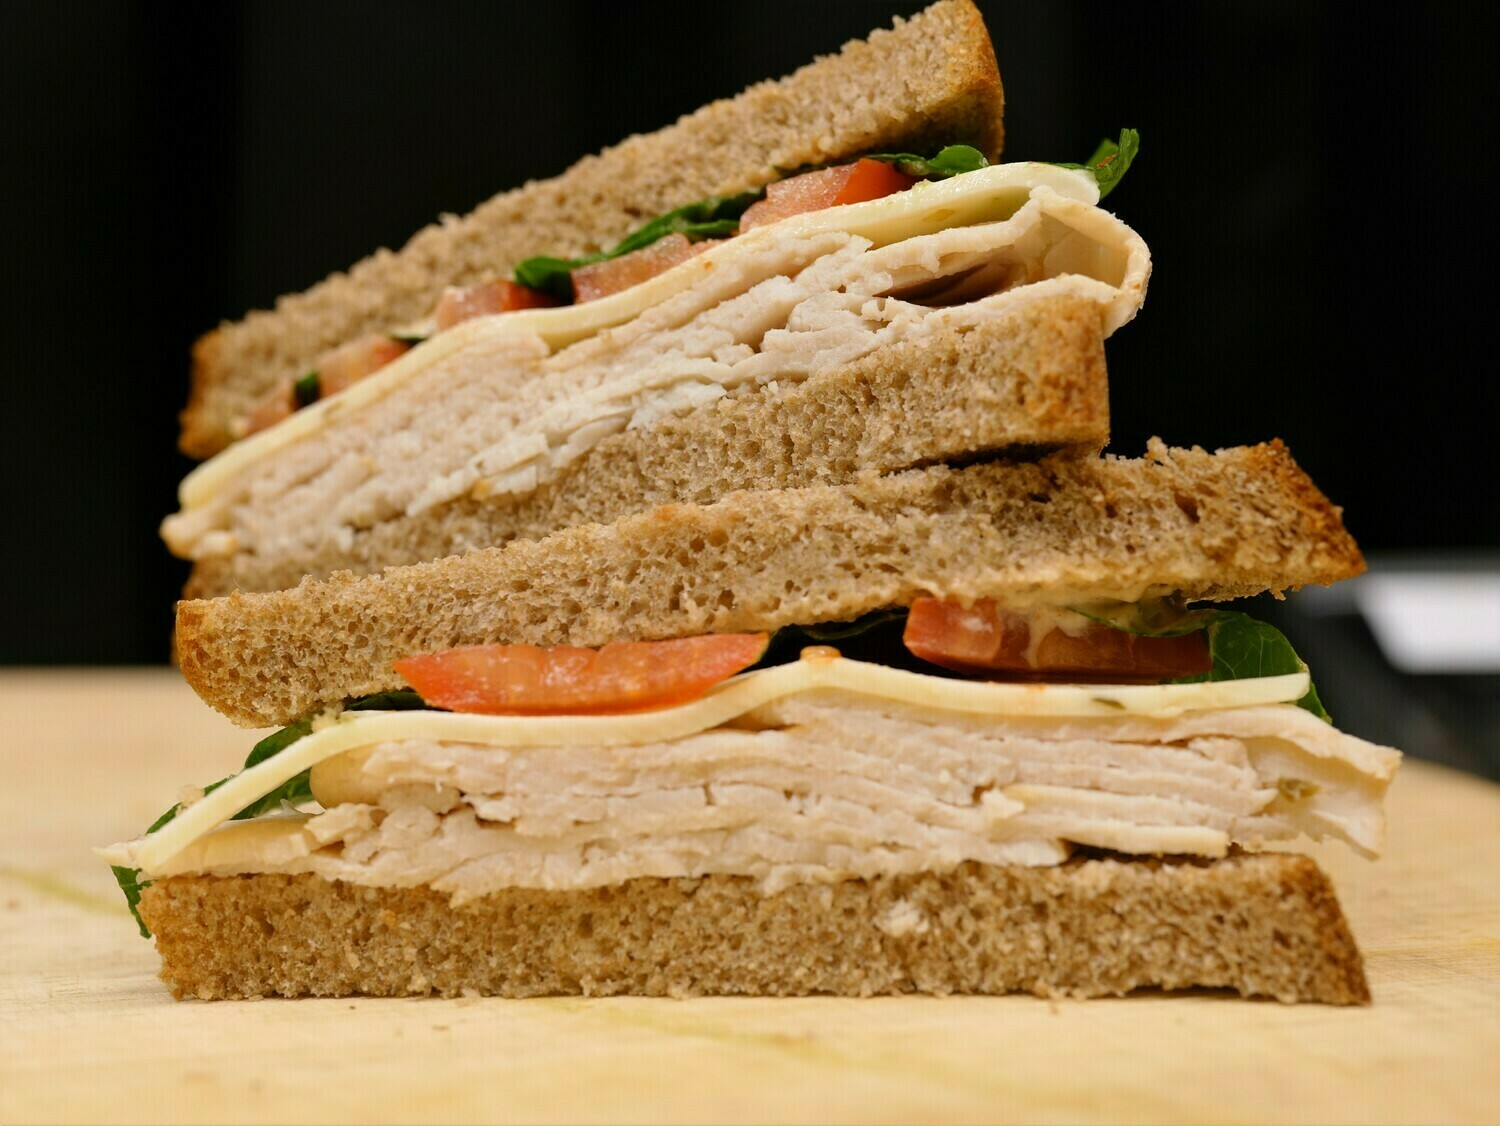 Roast Turkey & Jack Cheese Sandwich